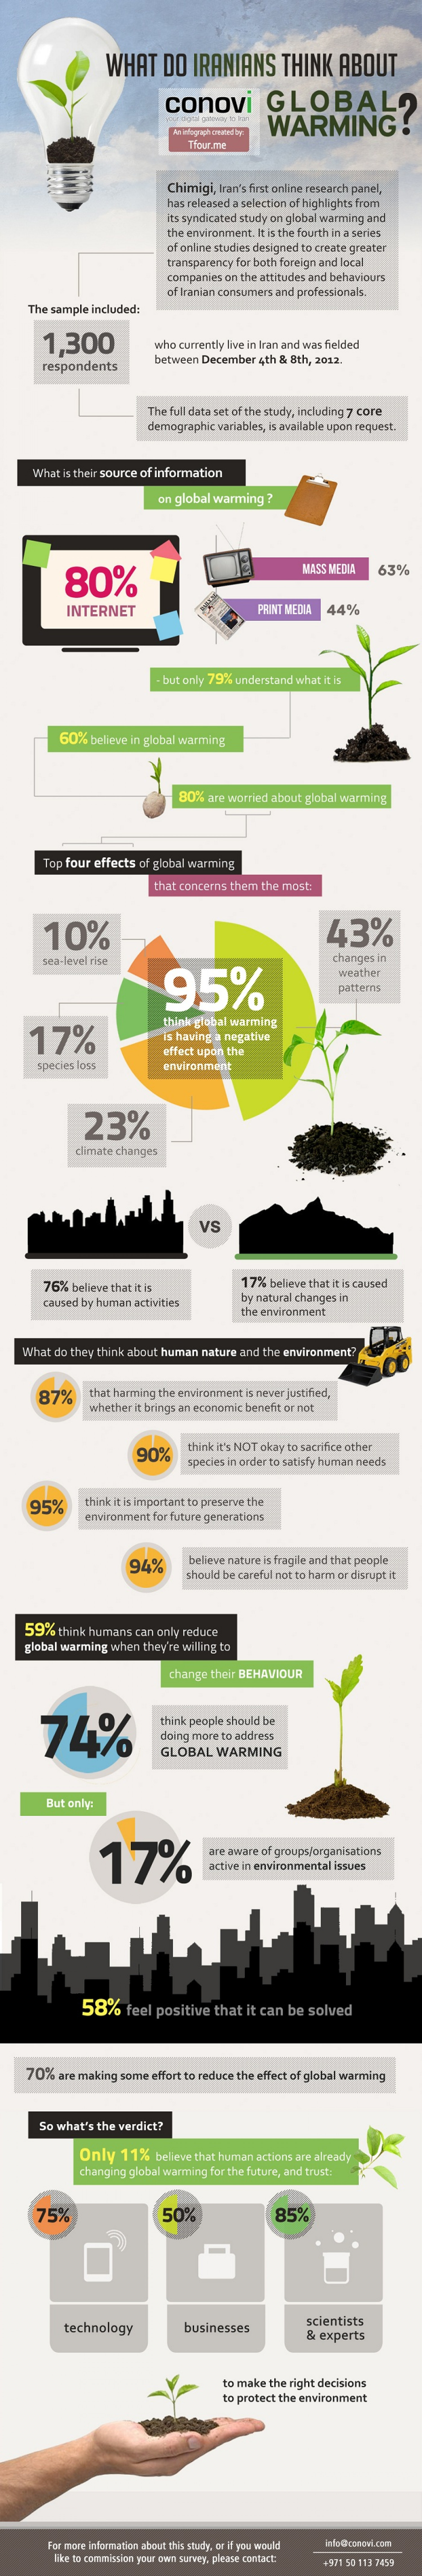 What do Iranians think about Global Warming? Infographic